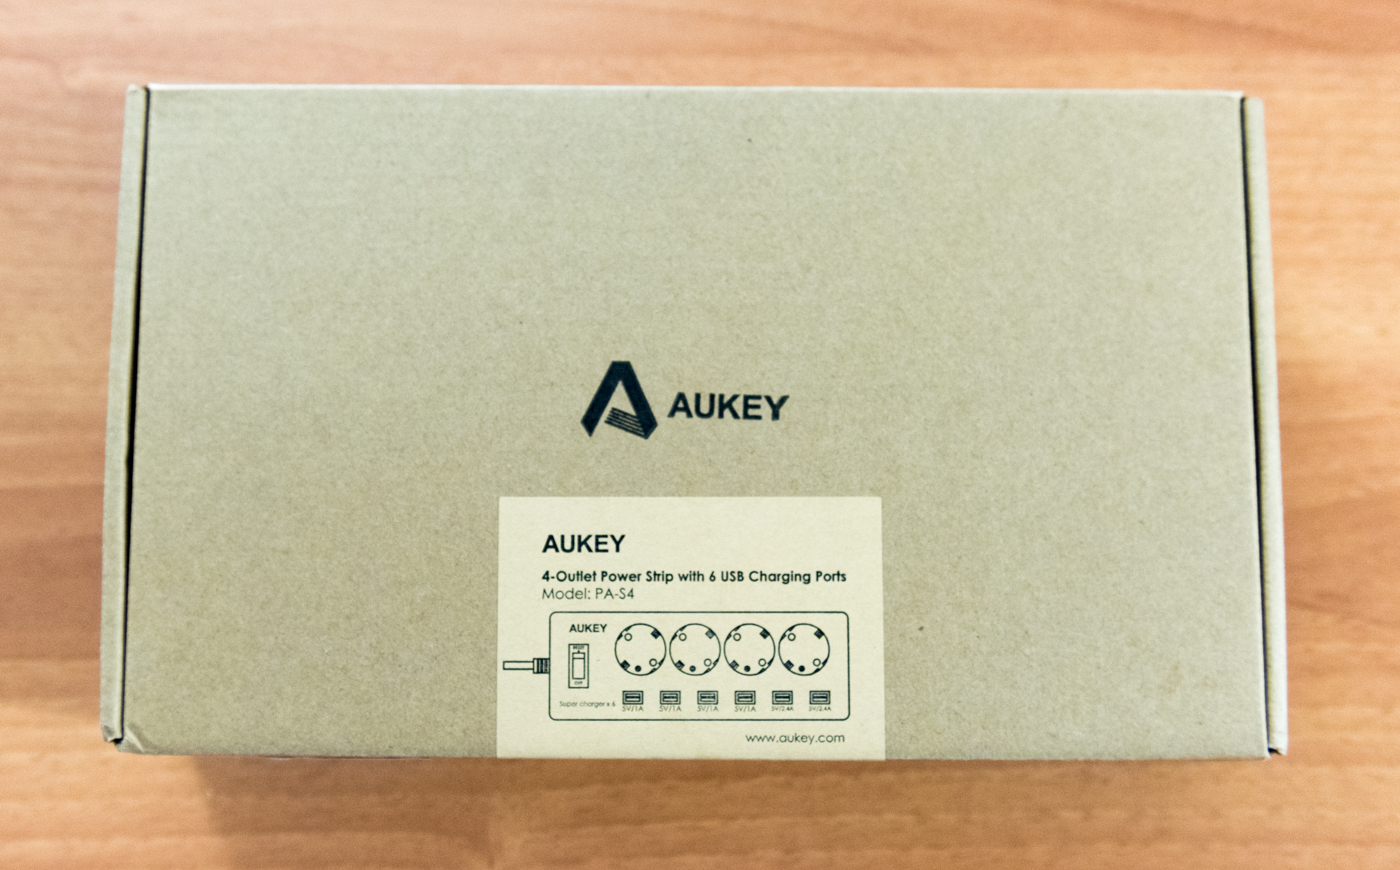 Unboxing multipresa AUKEY PA S4